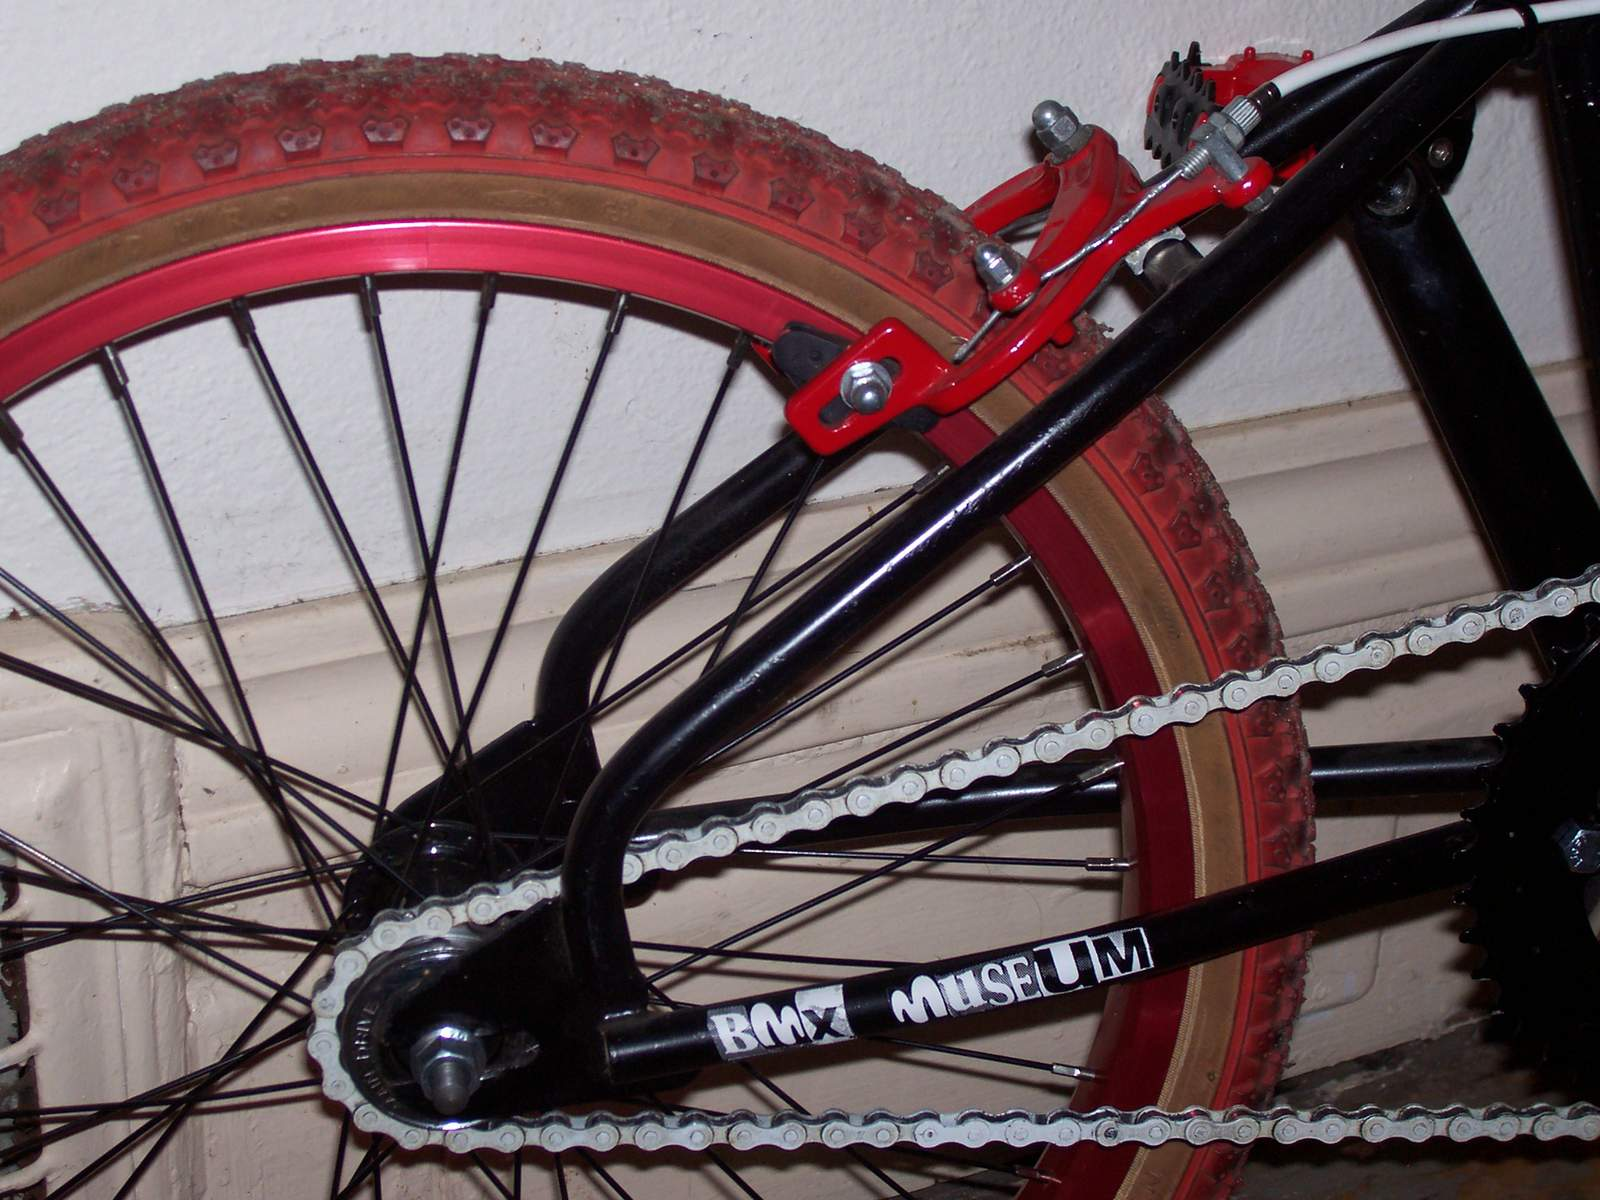 http://uploads.bmxmuseum.com/user-images/61851/100_6625581adb0a32.jpg